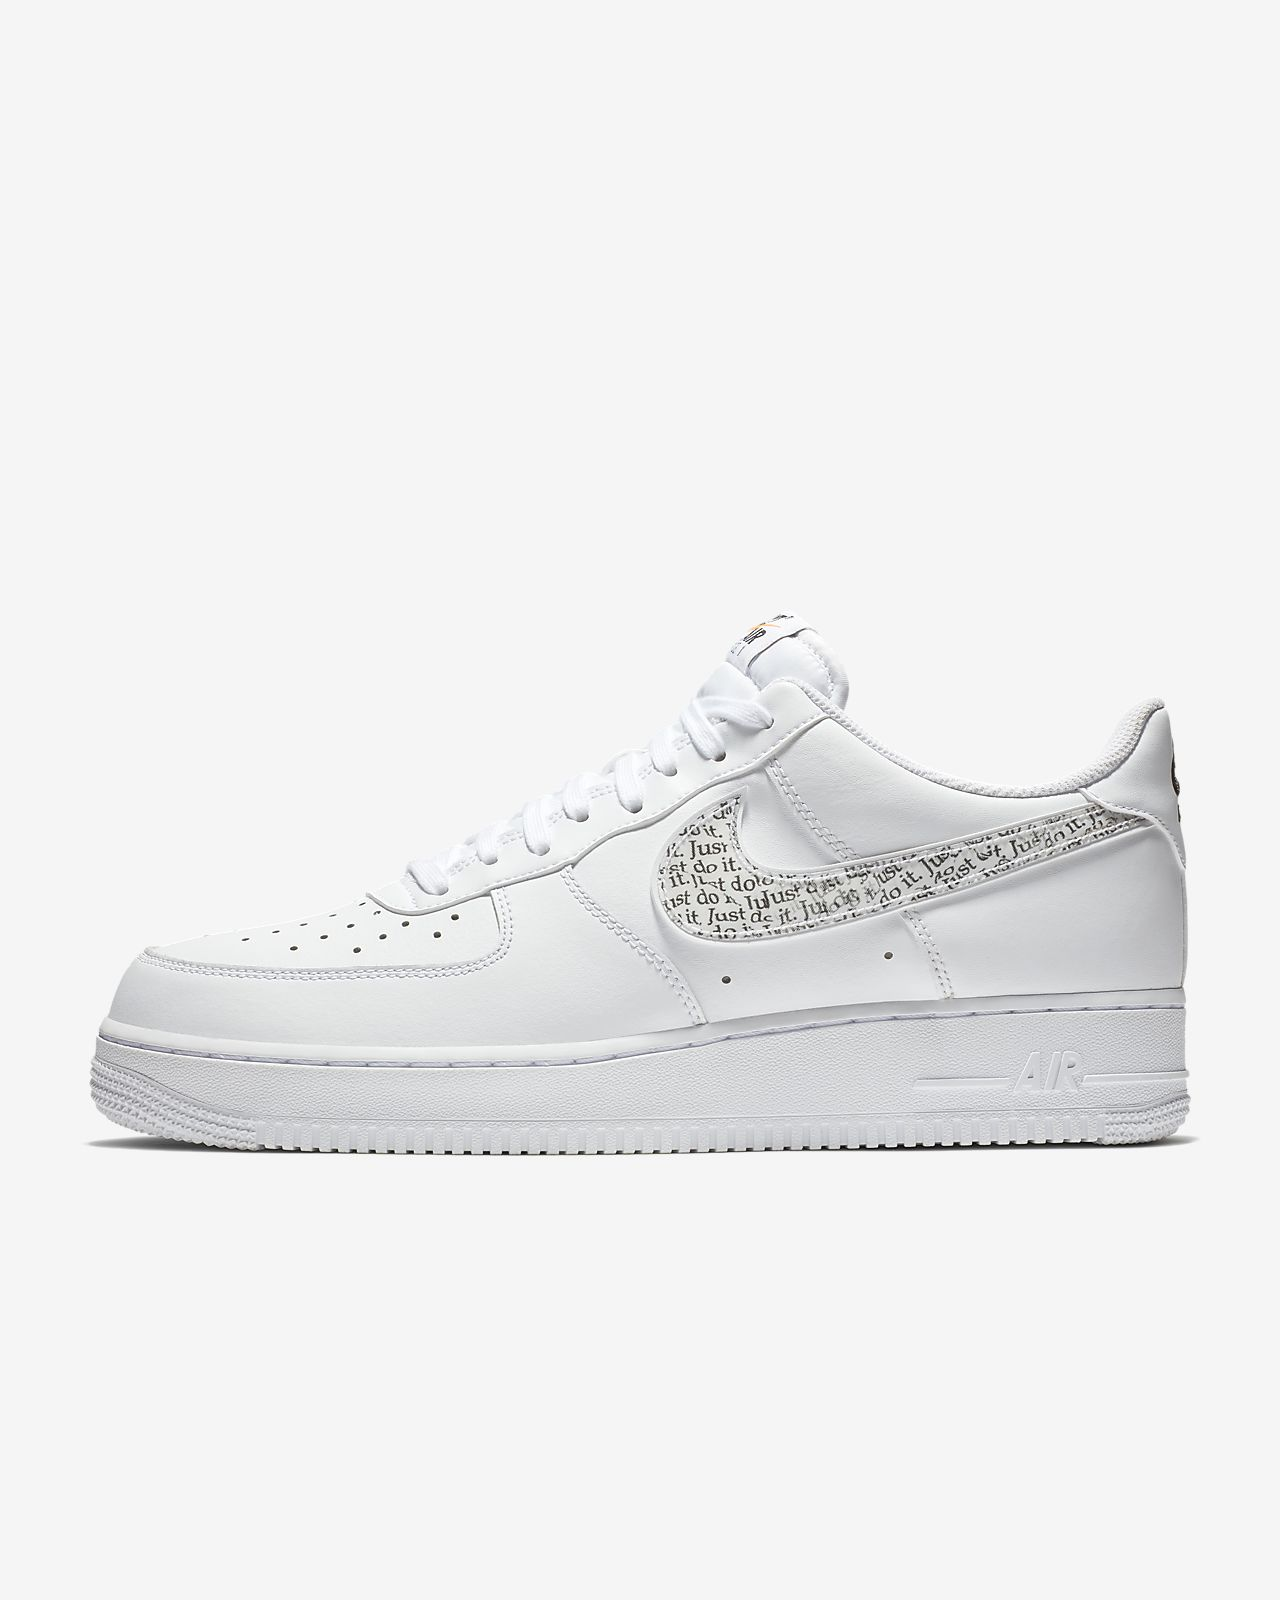 nike air force 1 just do it alte